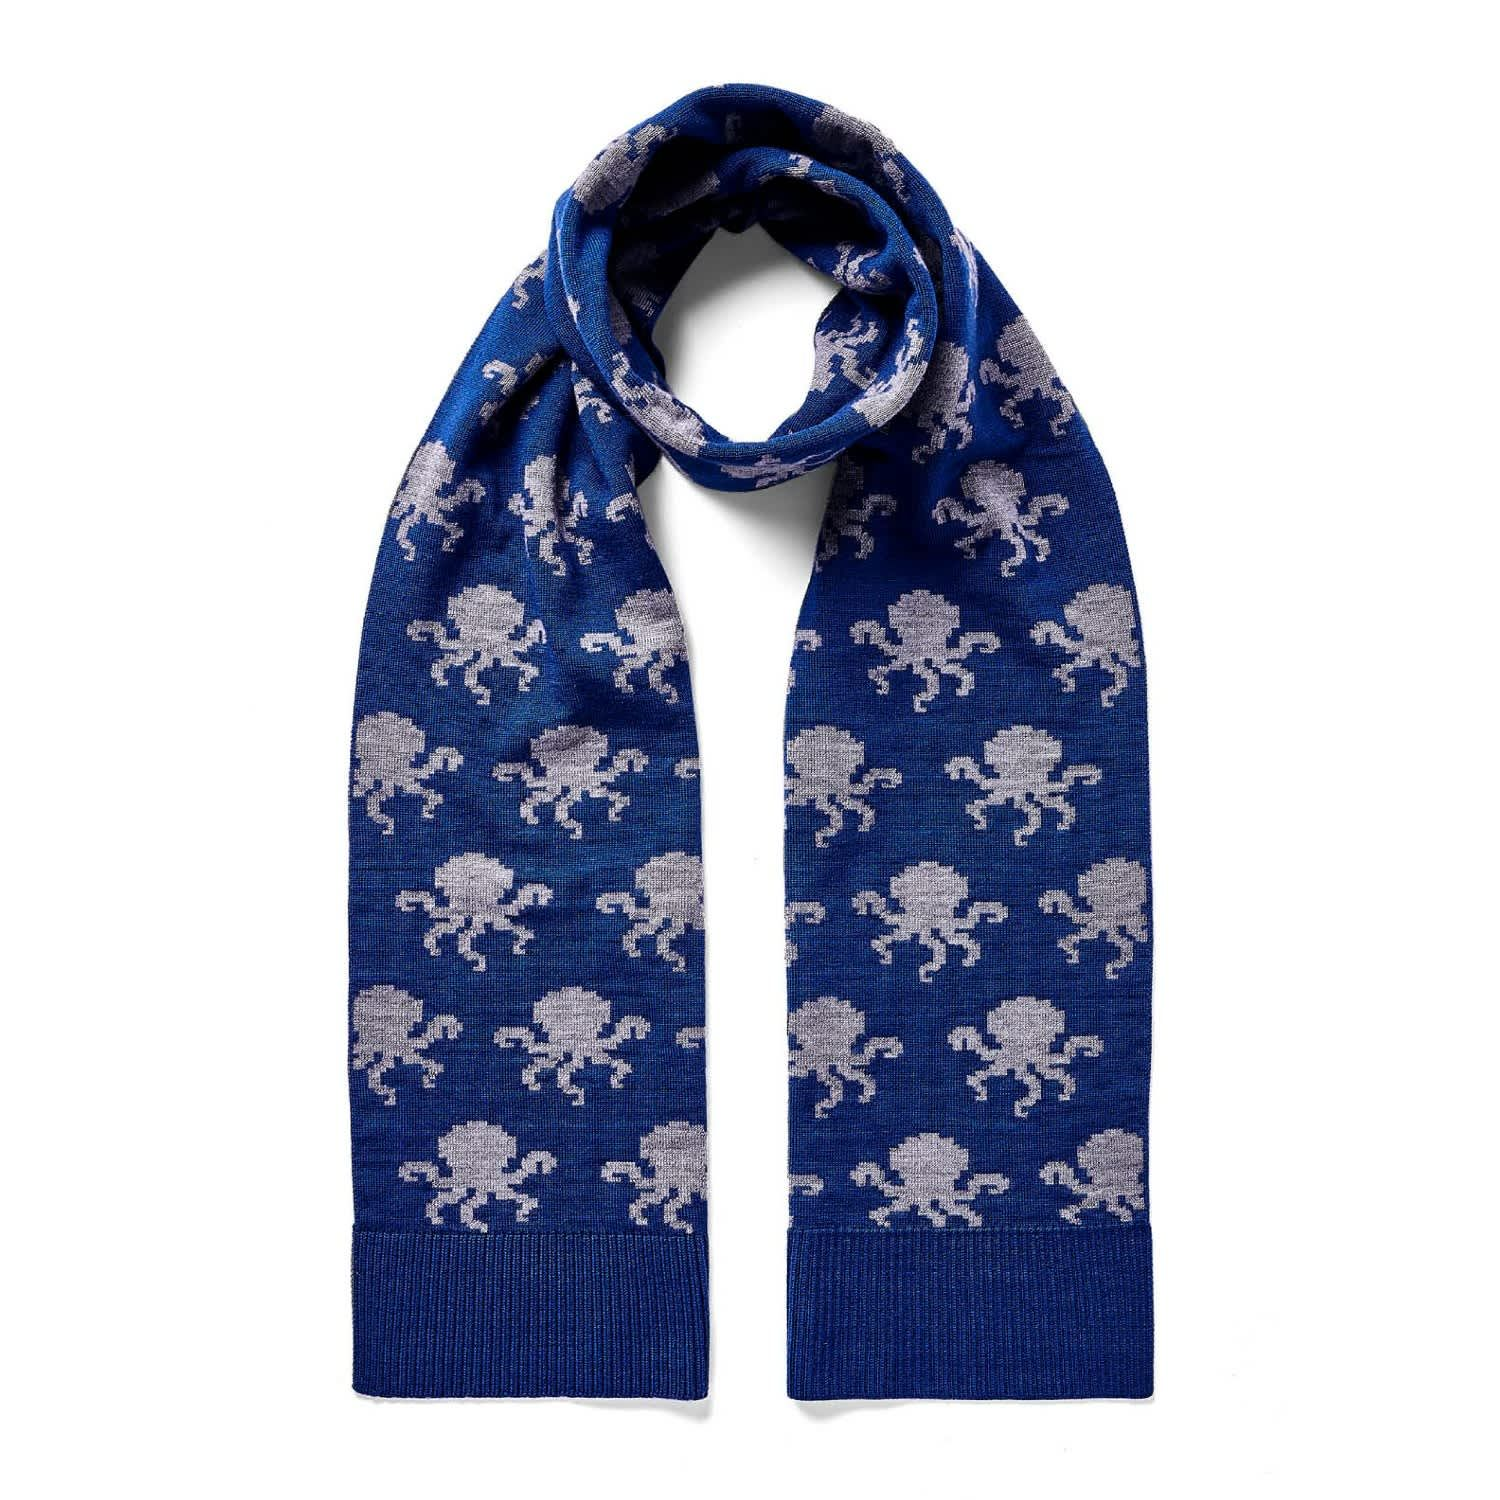 What's Kraken Merino Wool Scarf